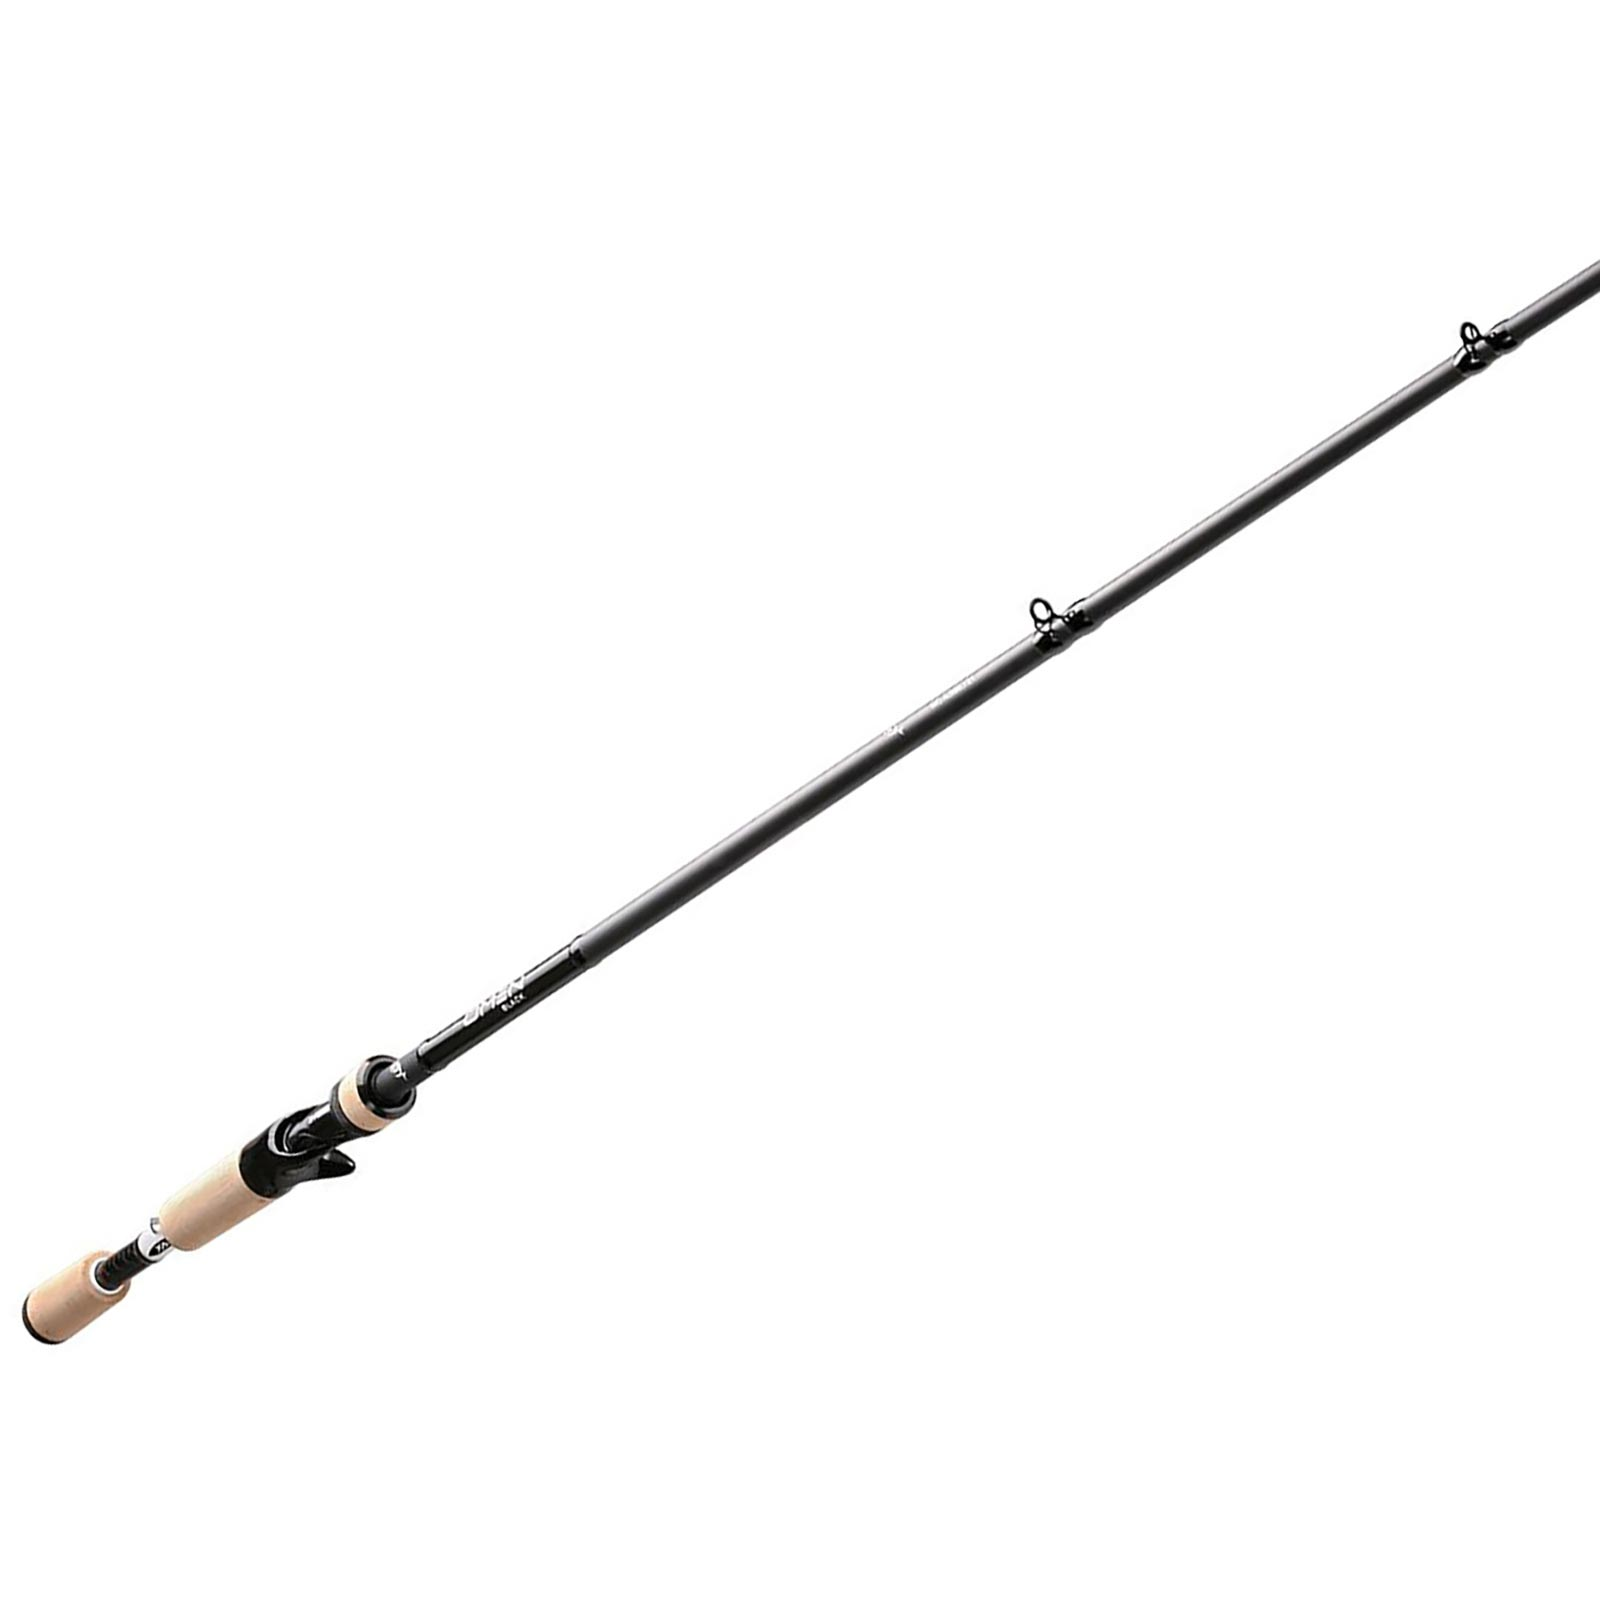 13 Fishing Omen Black 3 Kayak Casting Rod left side view